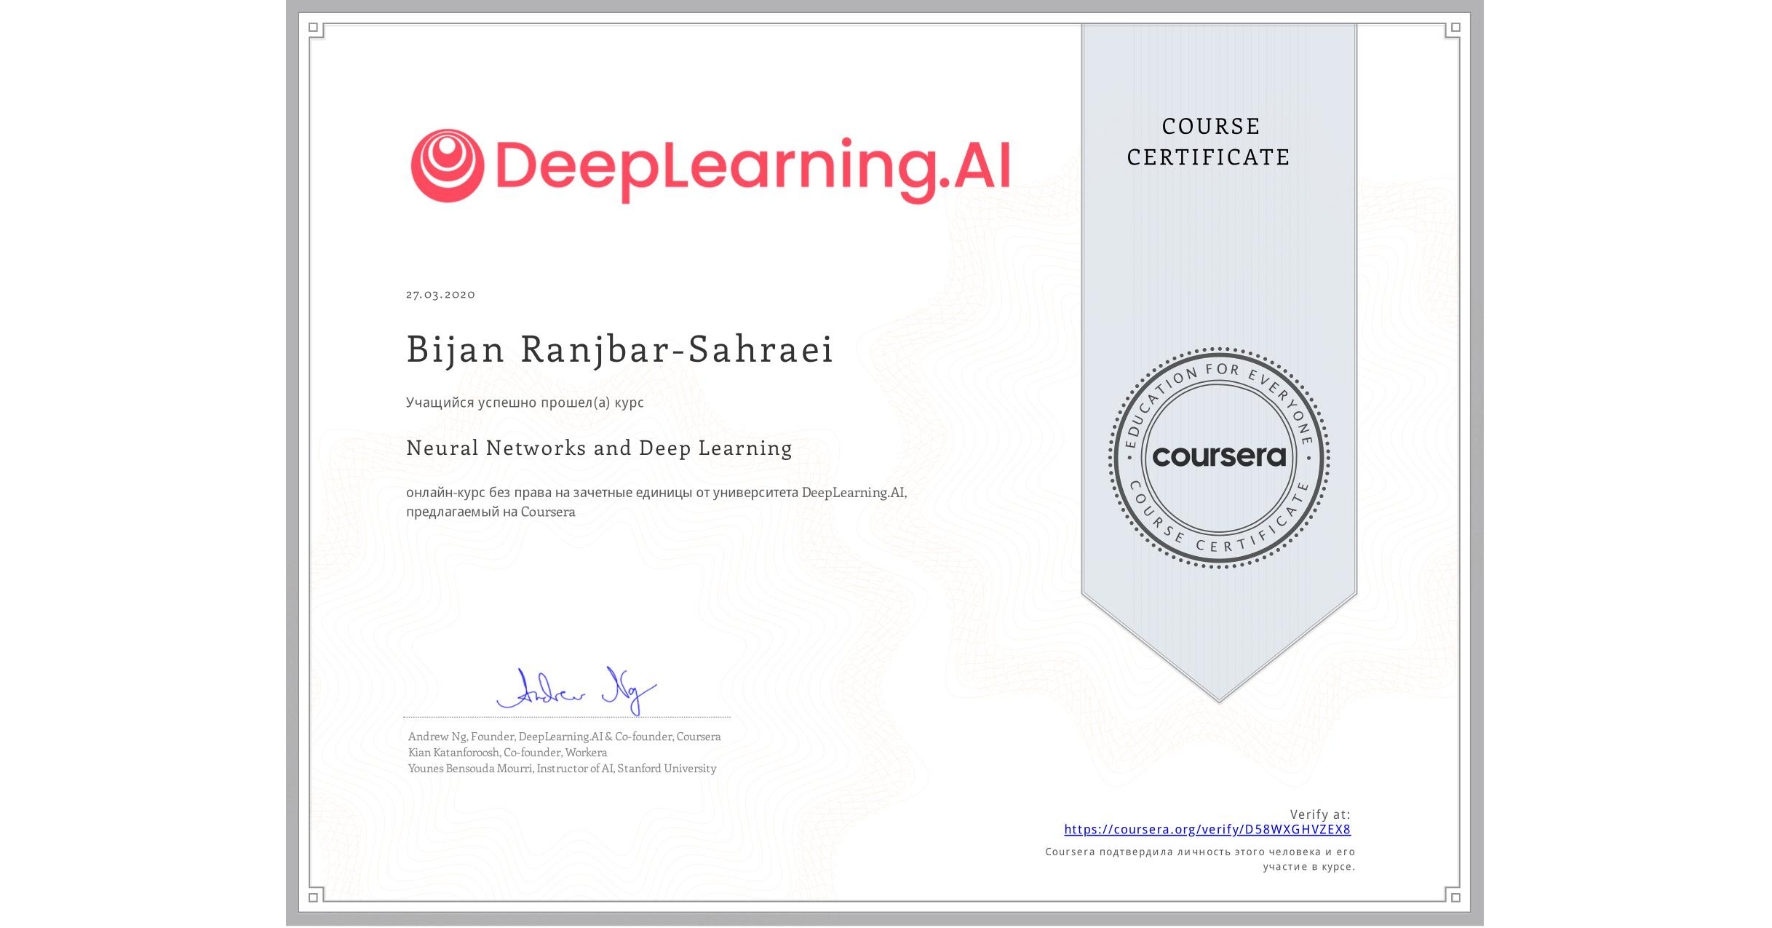 View certificate for Bijan Ranjbar-Sahraei, Neural Networks and Deep Learning, an online non-credit course authorized by DeepLearning.AI and offered through Coursera